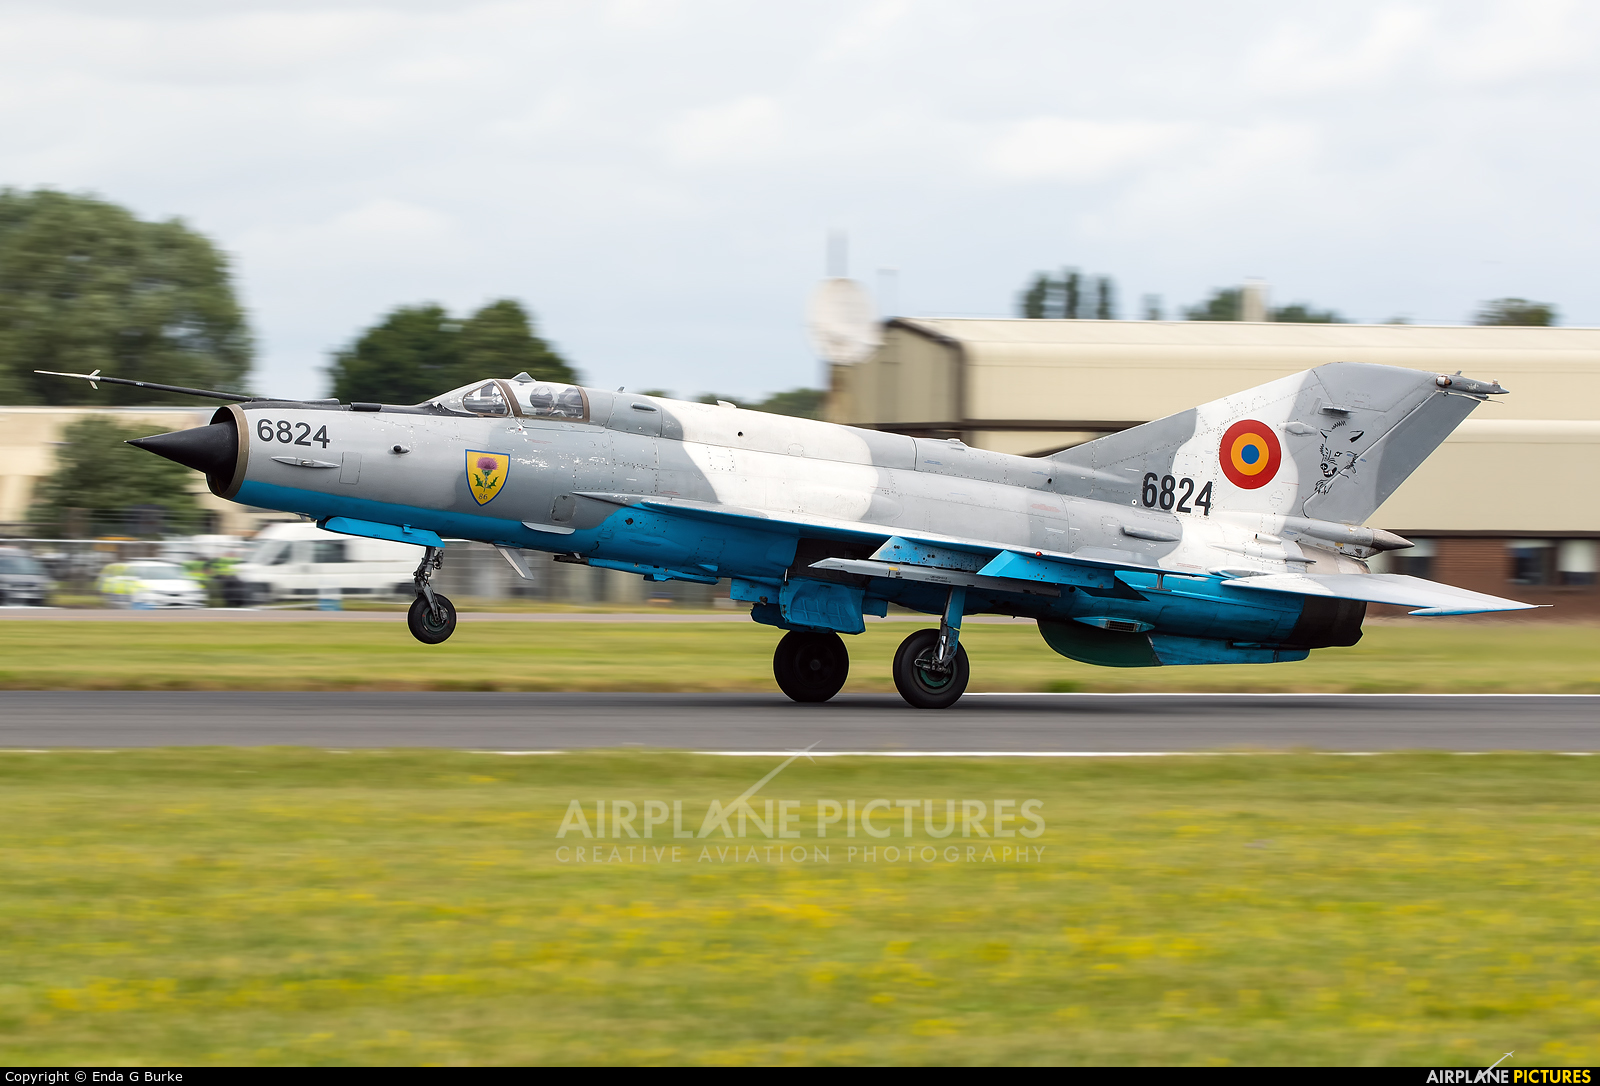 Romania - Air Force 6824 aircraft at Fairford